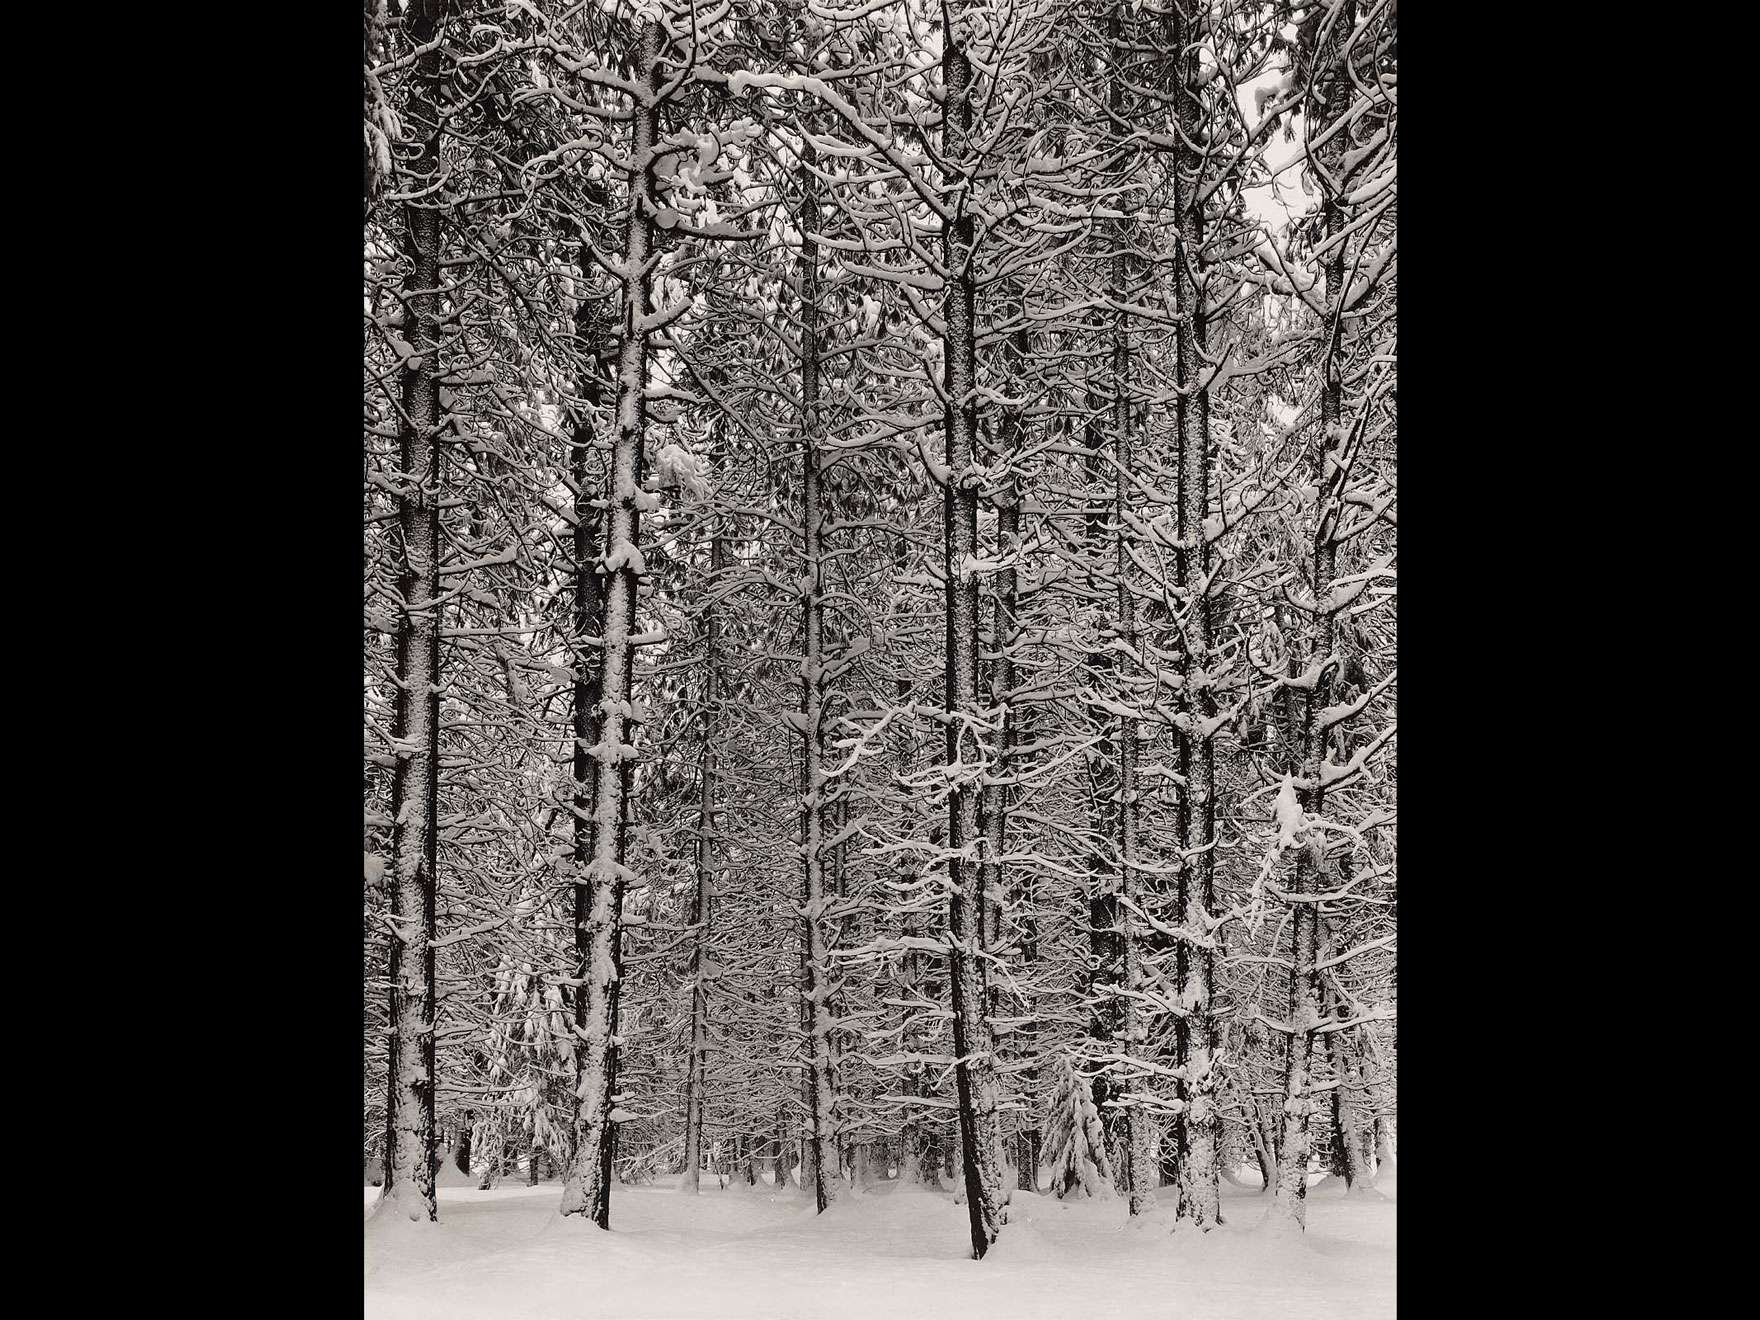 Ansel Adams' photograph, Pine Forest in Snow, Yosemite National Park